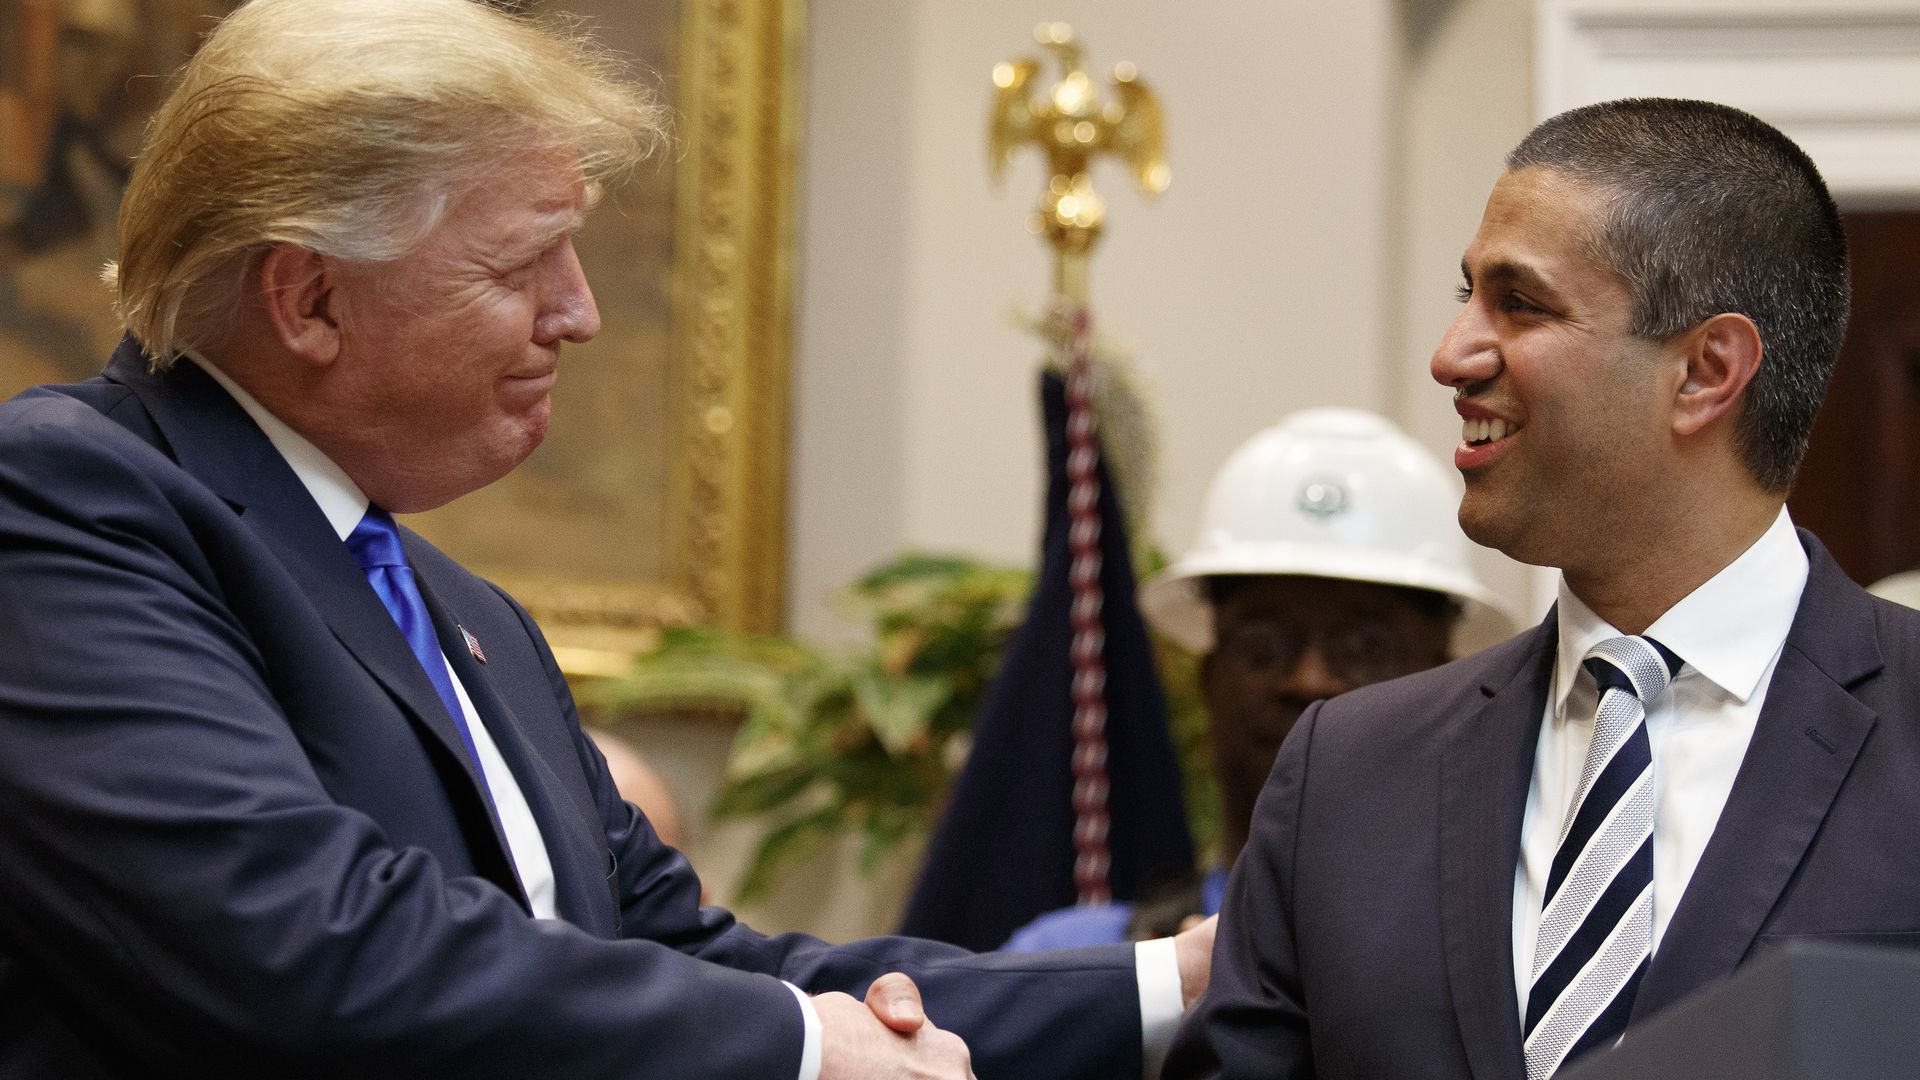 Photo of President Trump shaking hands with FCC chairman Ajit Pai